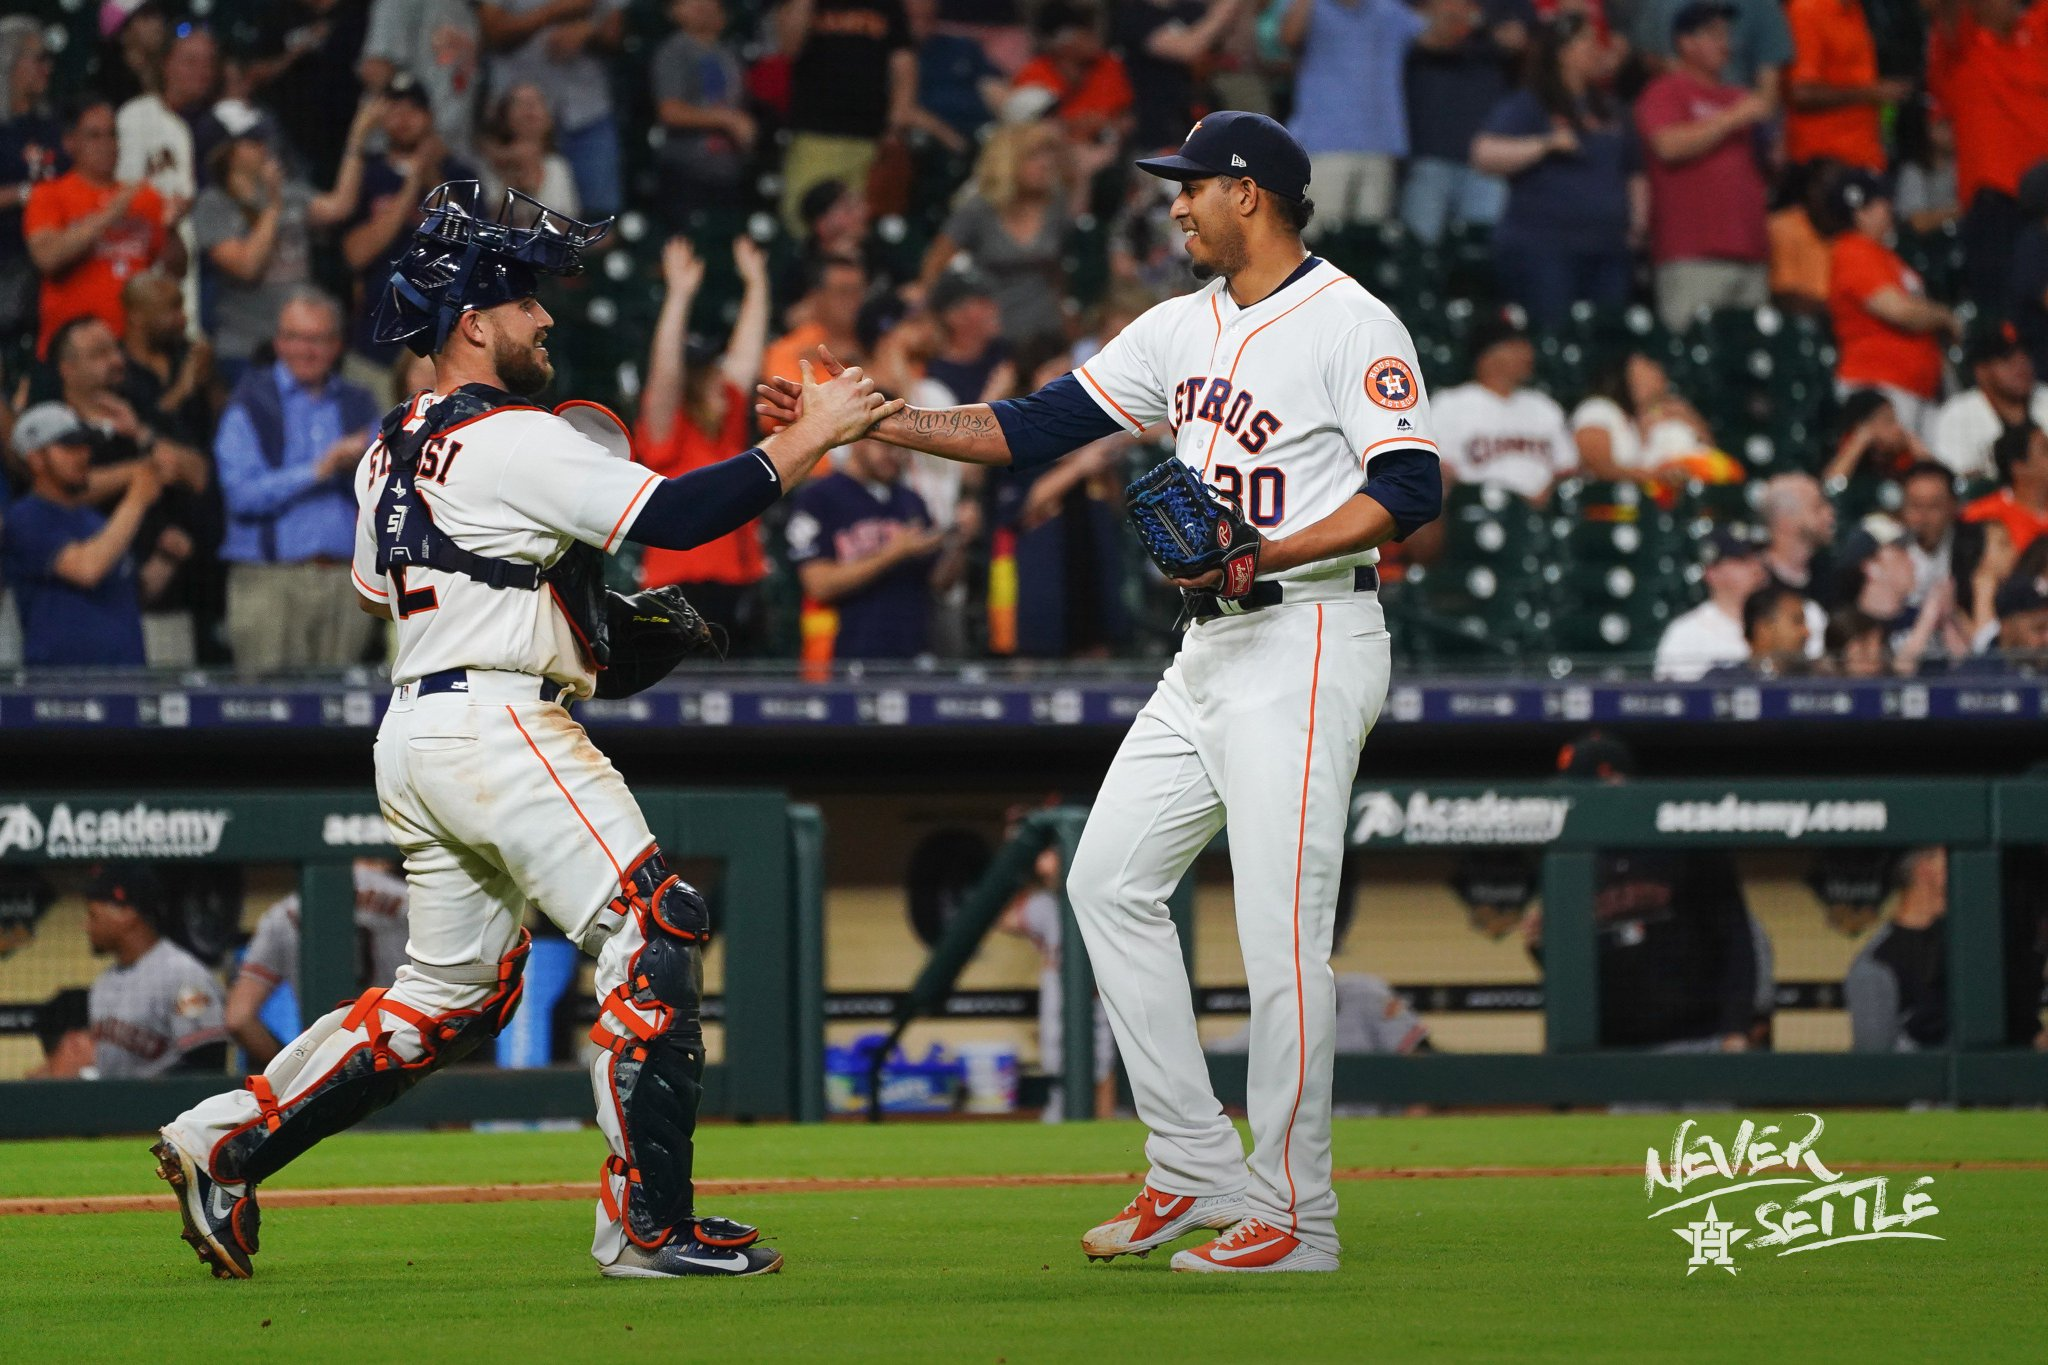 W. 31-18. #NeverSettle https://t.co/48sl6wsijw